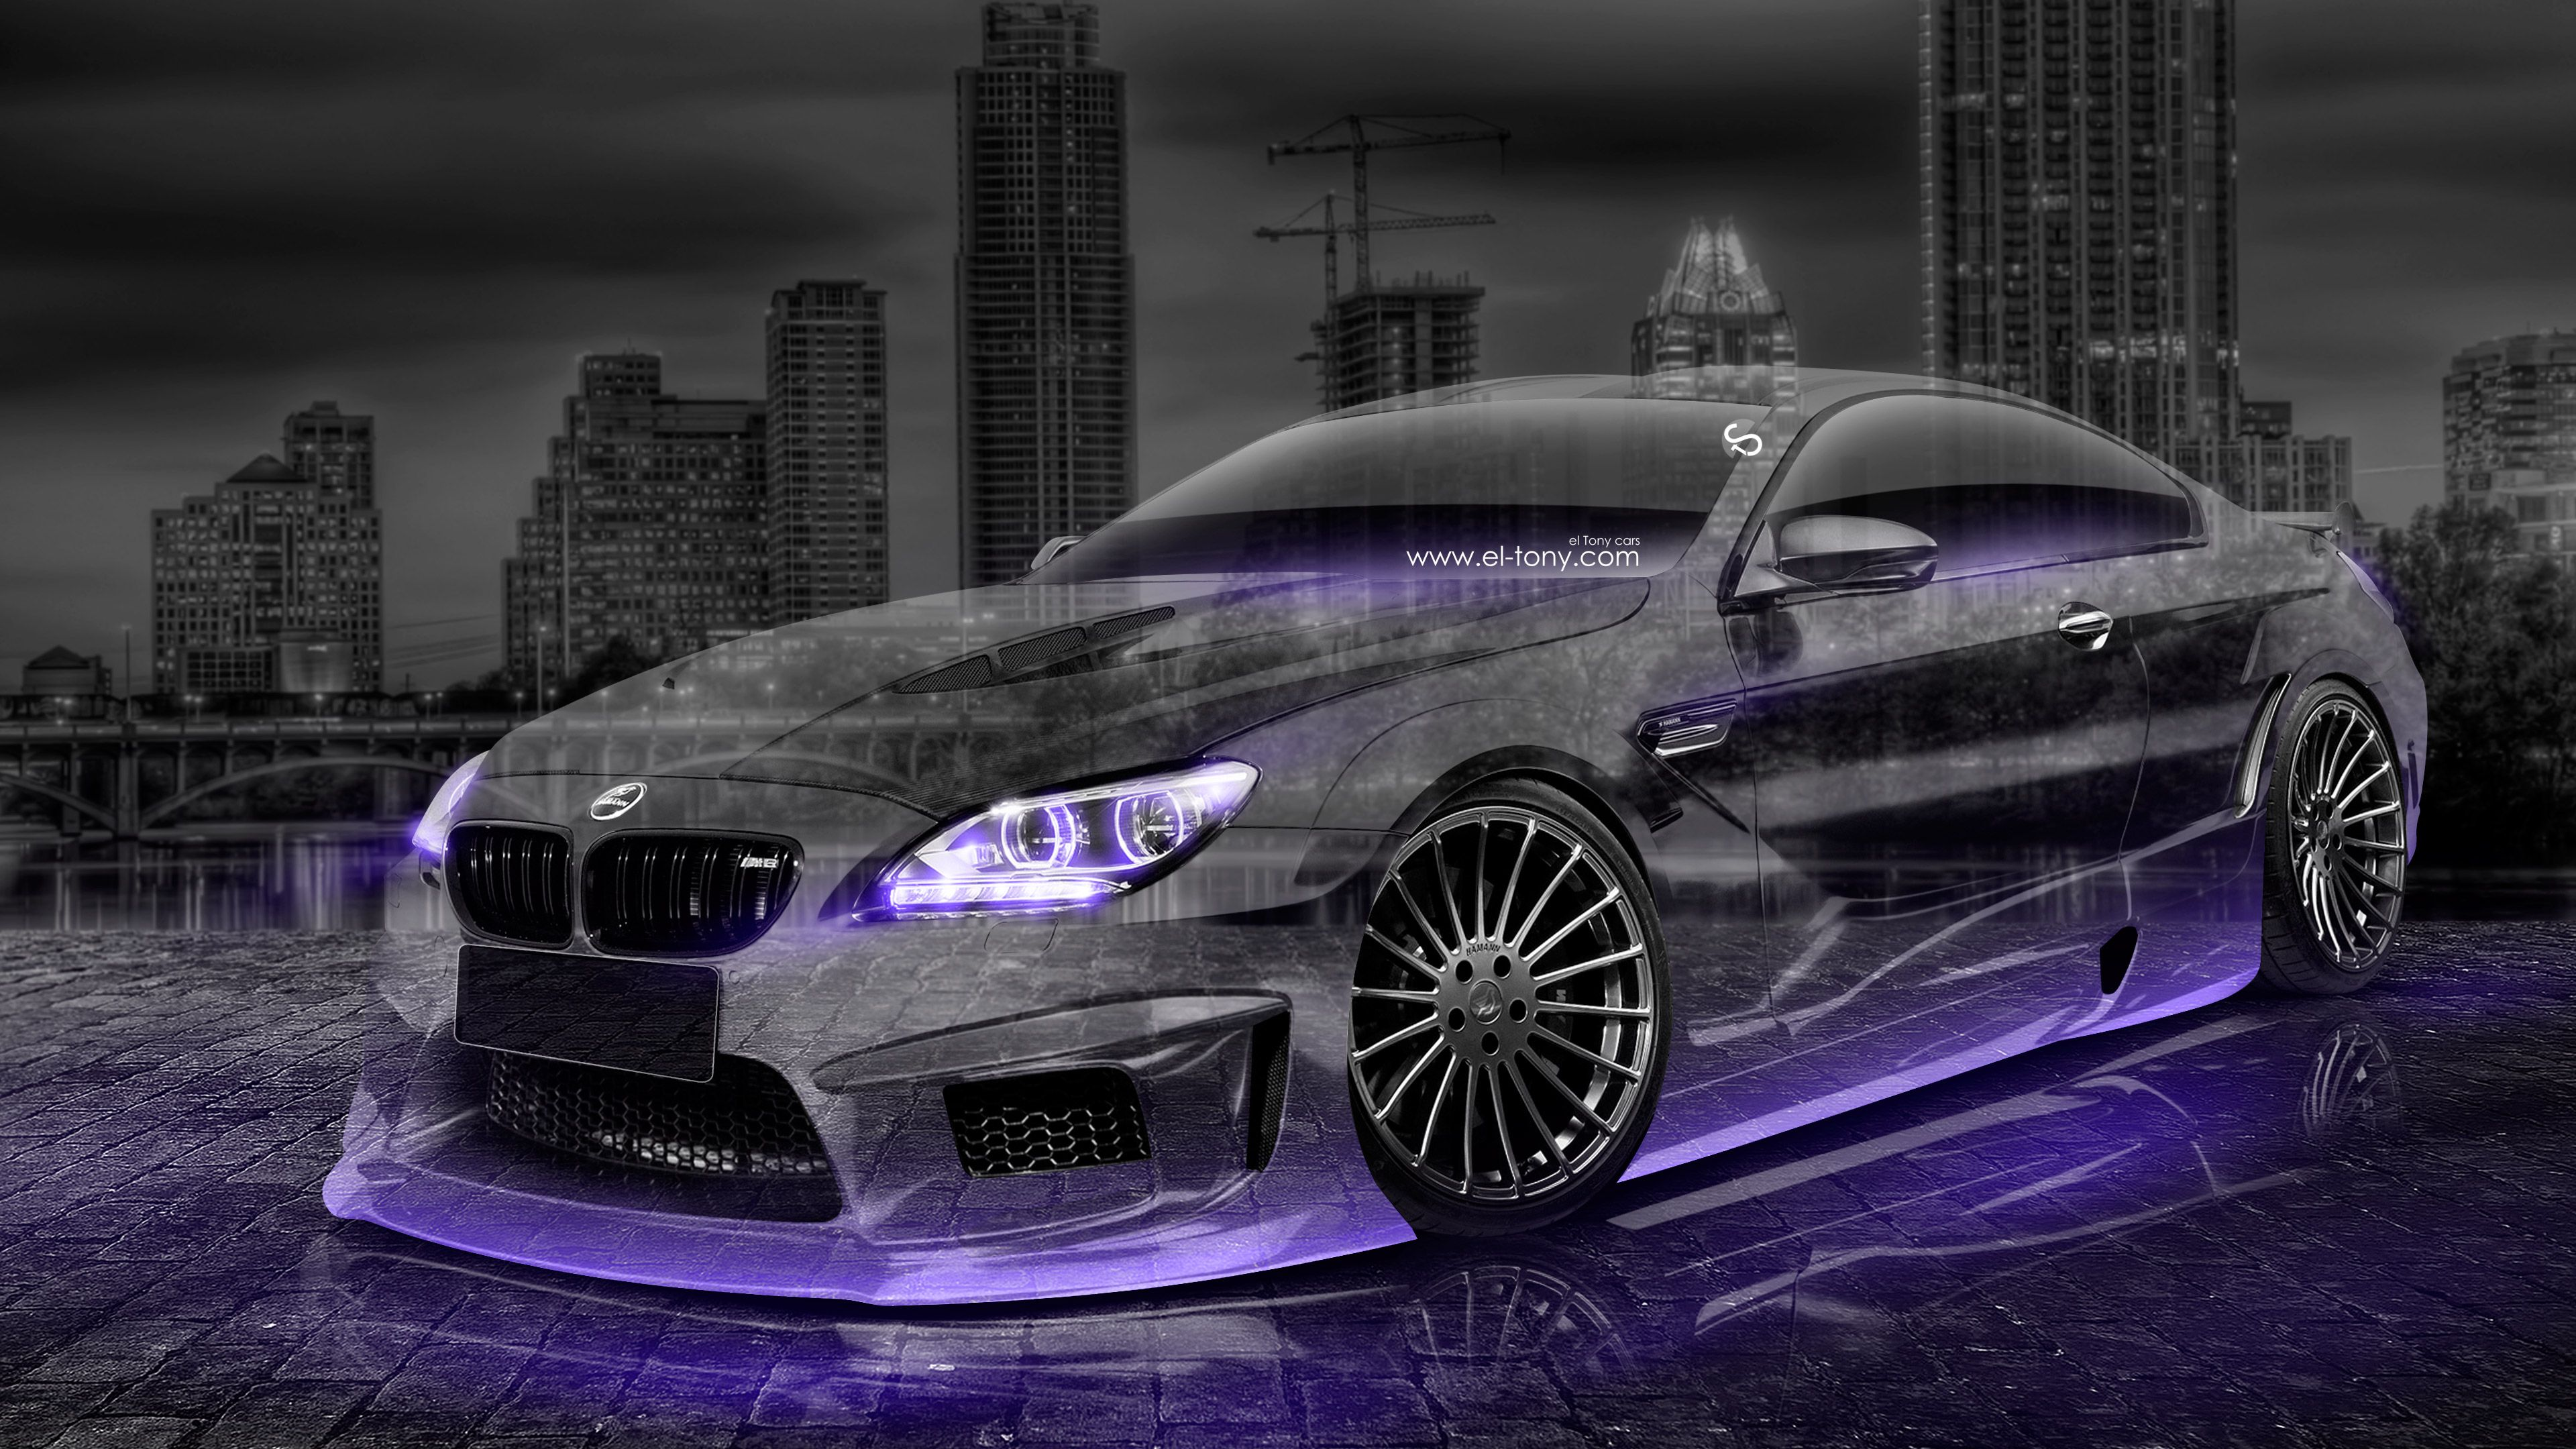 Etonnant BMW M6 Hamann Tuning 3D Crystal City Car